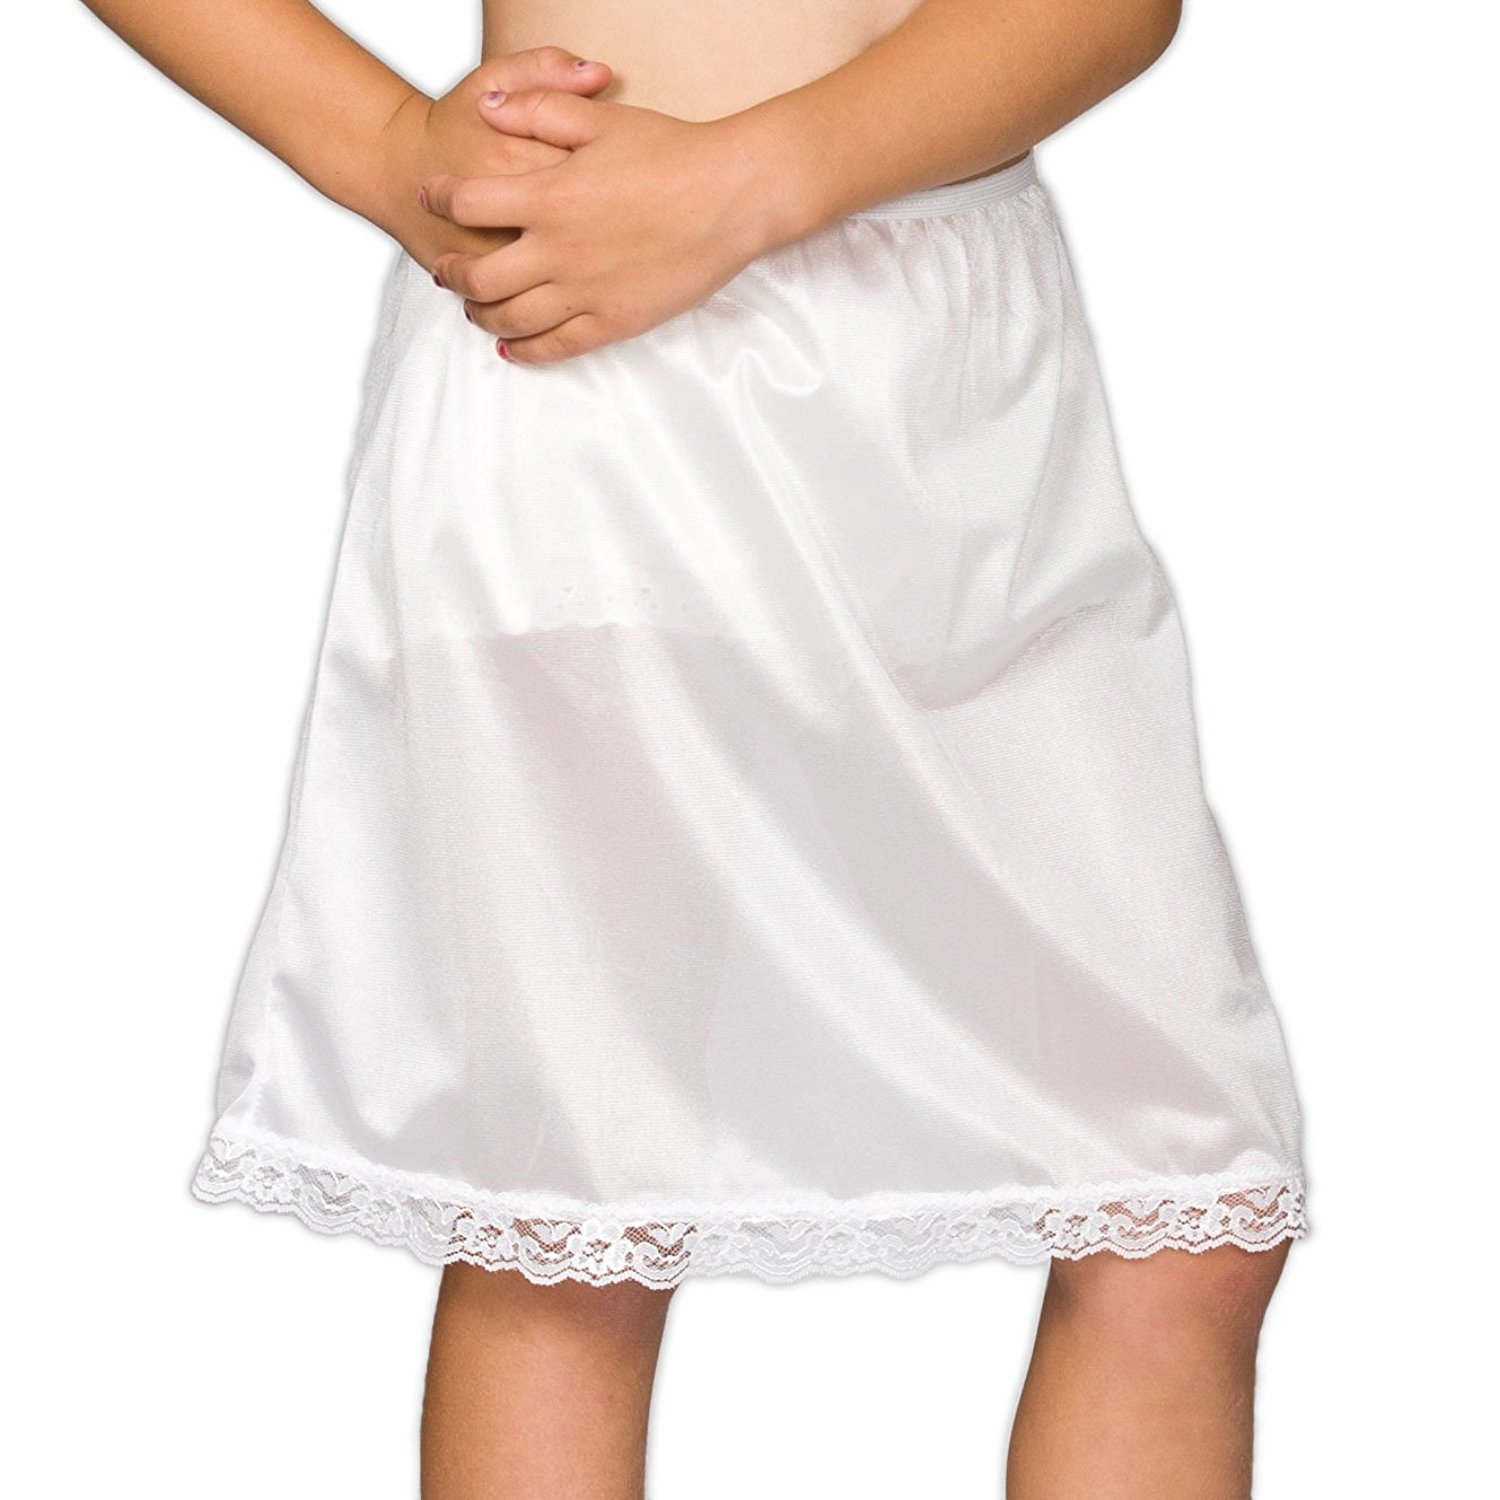 I.C 6X 2T Collections Little Girls White Embellished A-Line Slip